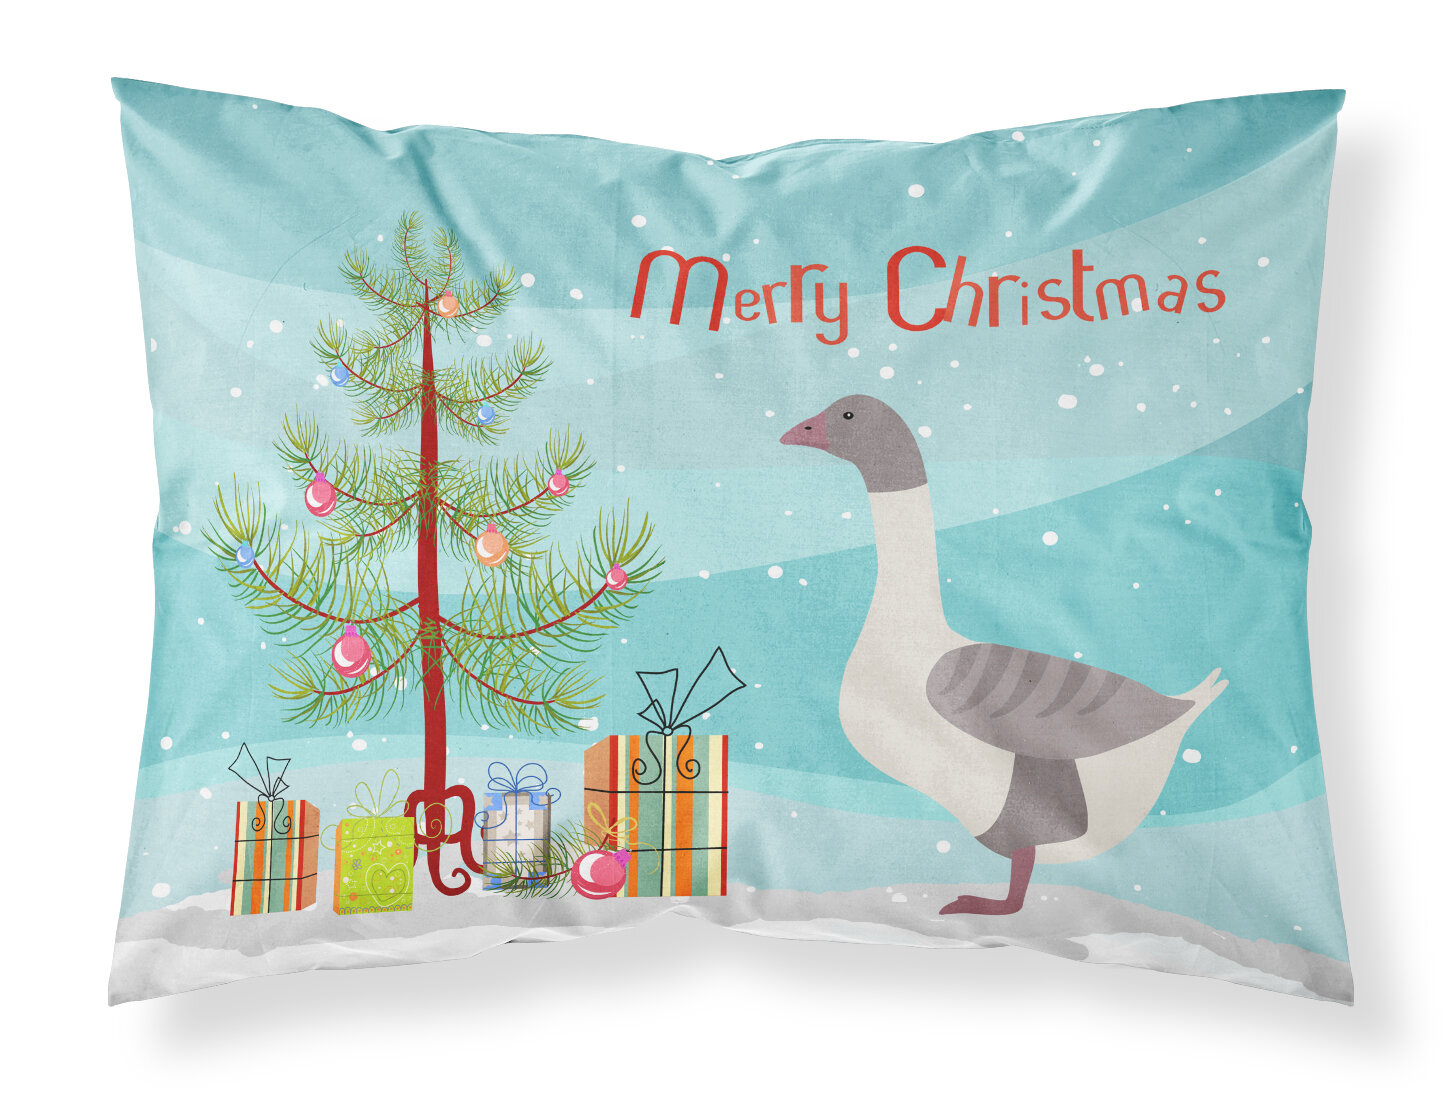 East Urban Home Back Goose Christmas Pillowcase Wayfair